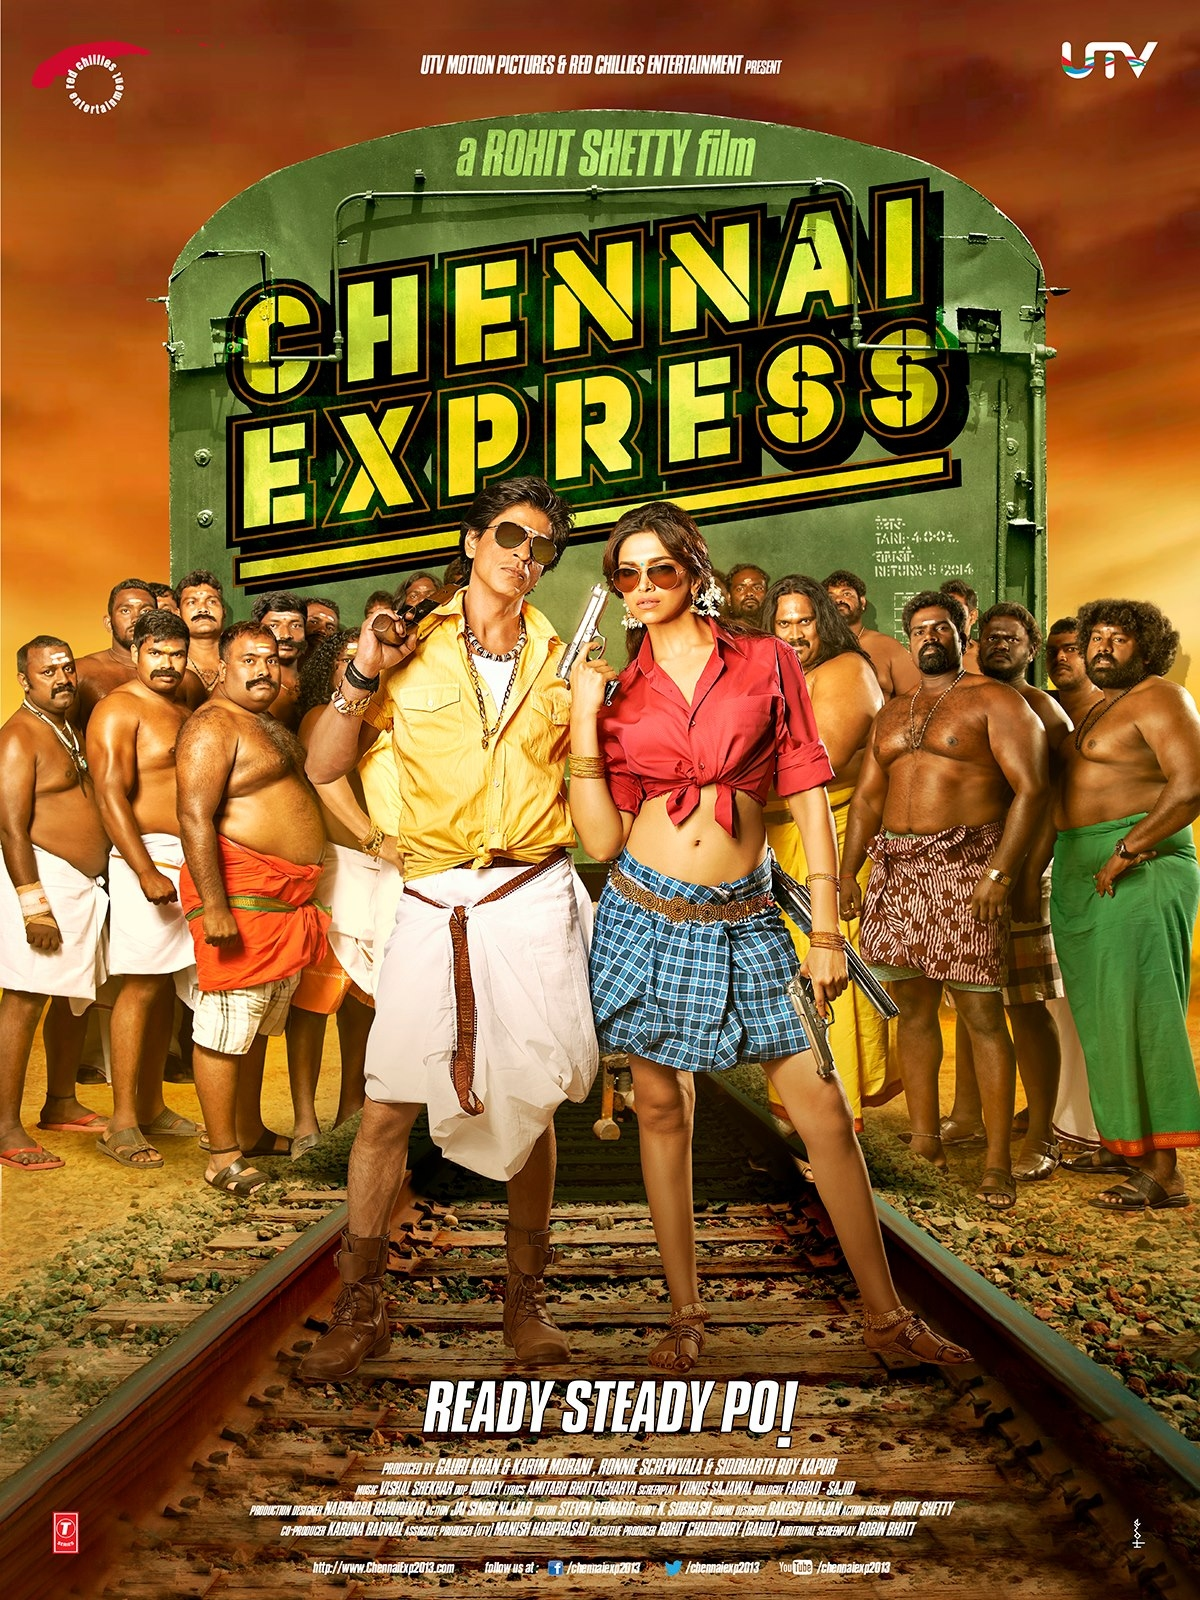 Chennai Express - Movie Poster #4 (Original)